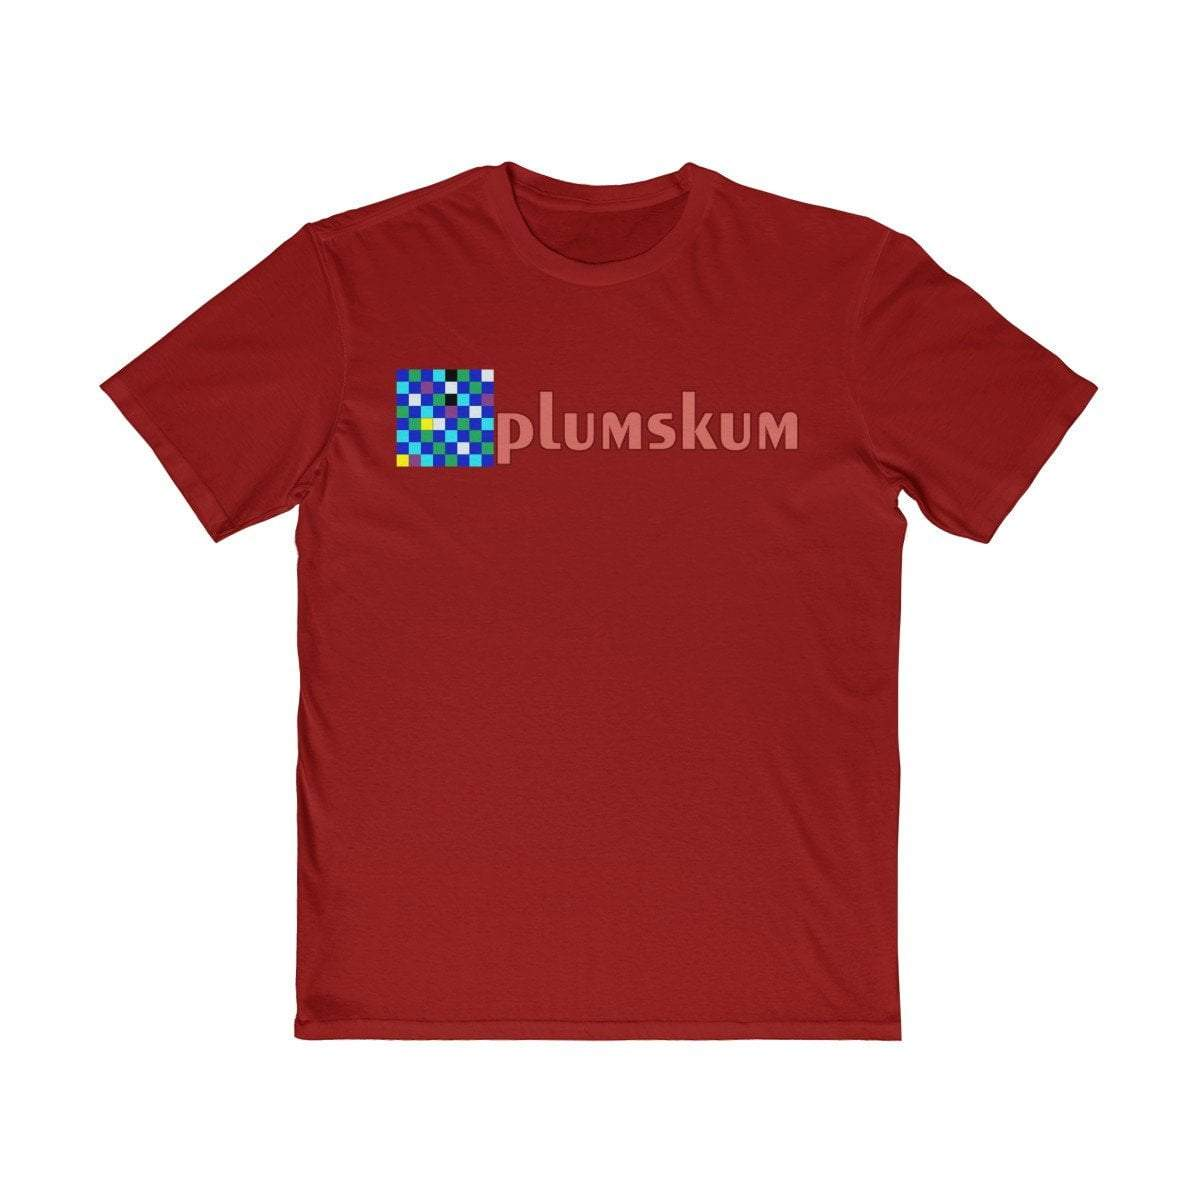 Plumskum Clothing > Men's Clothing > Shirts & Tees > T-shirts XS / Classic Red Falsches Schach - Wrong Chess - Original Art Deco Artwork T-Shirt - Pink